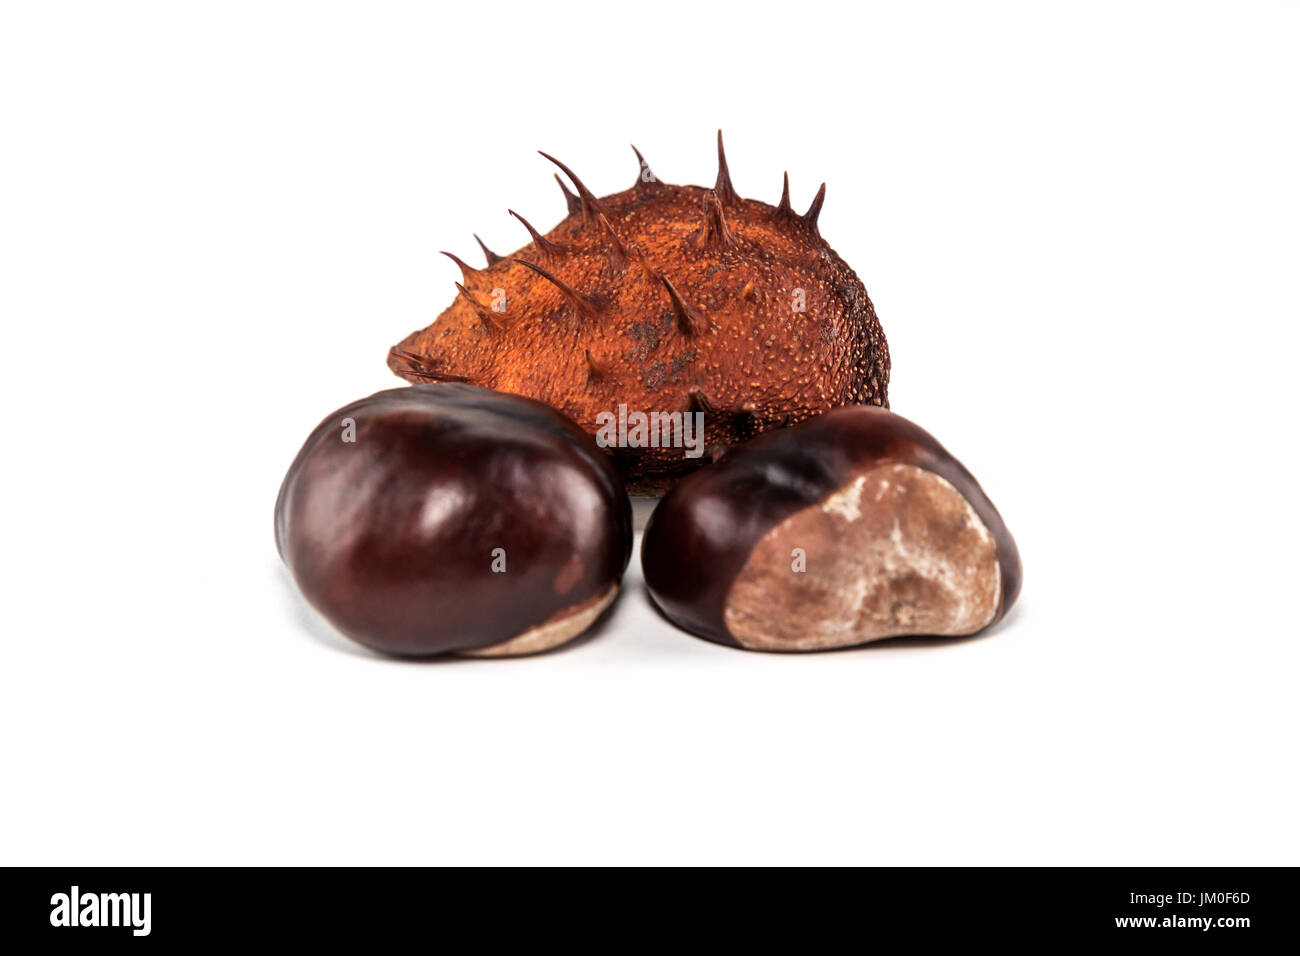 beechnut lie in front of white background, as a cut - Stock Image